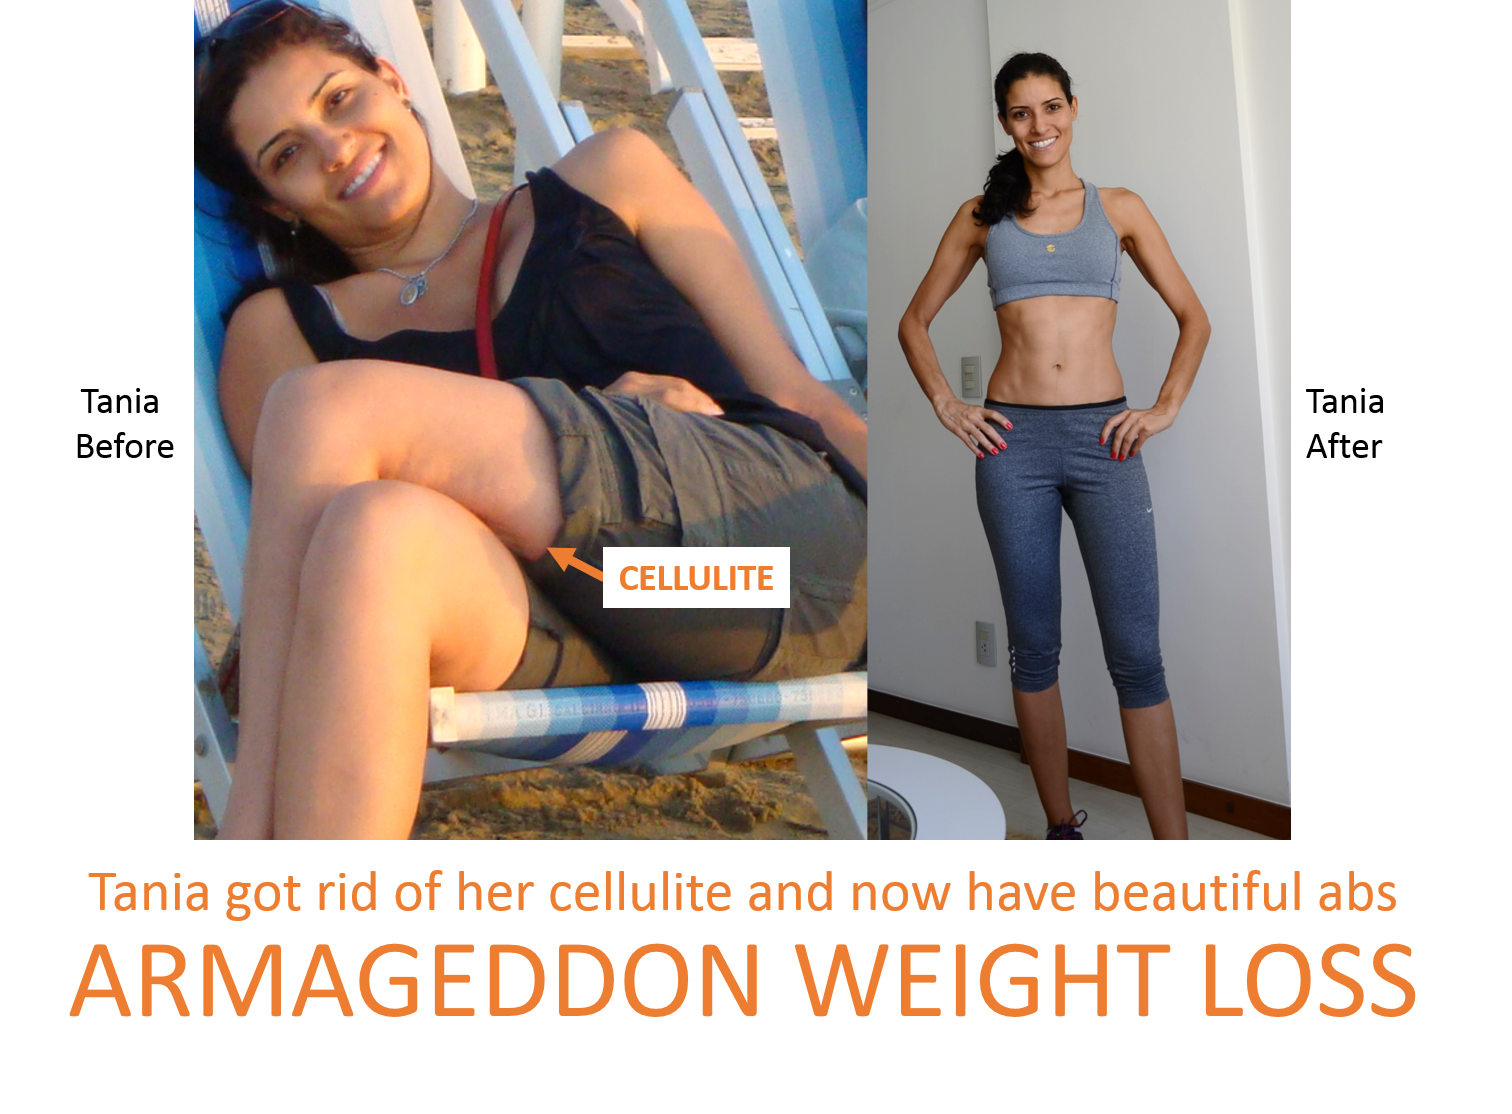 With Armageddon Weight Loss you learn; how to lose weight fast and how to get rid of cellulite fast. You get the best weight loss programs for women with true fast weight loss plans that are evidence based and built upon a strong scientific foundation.